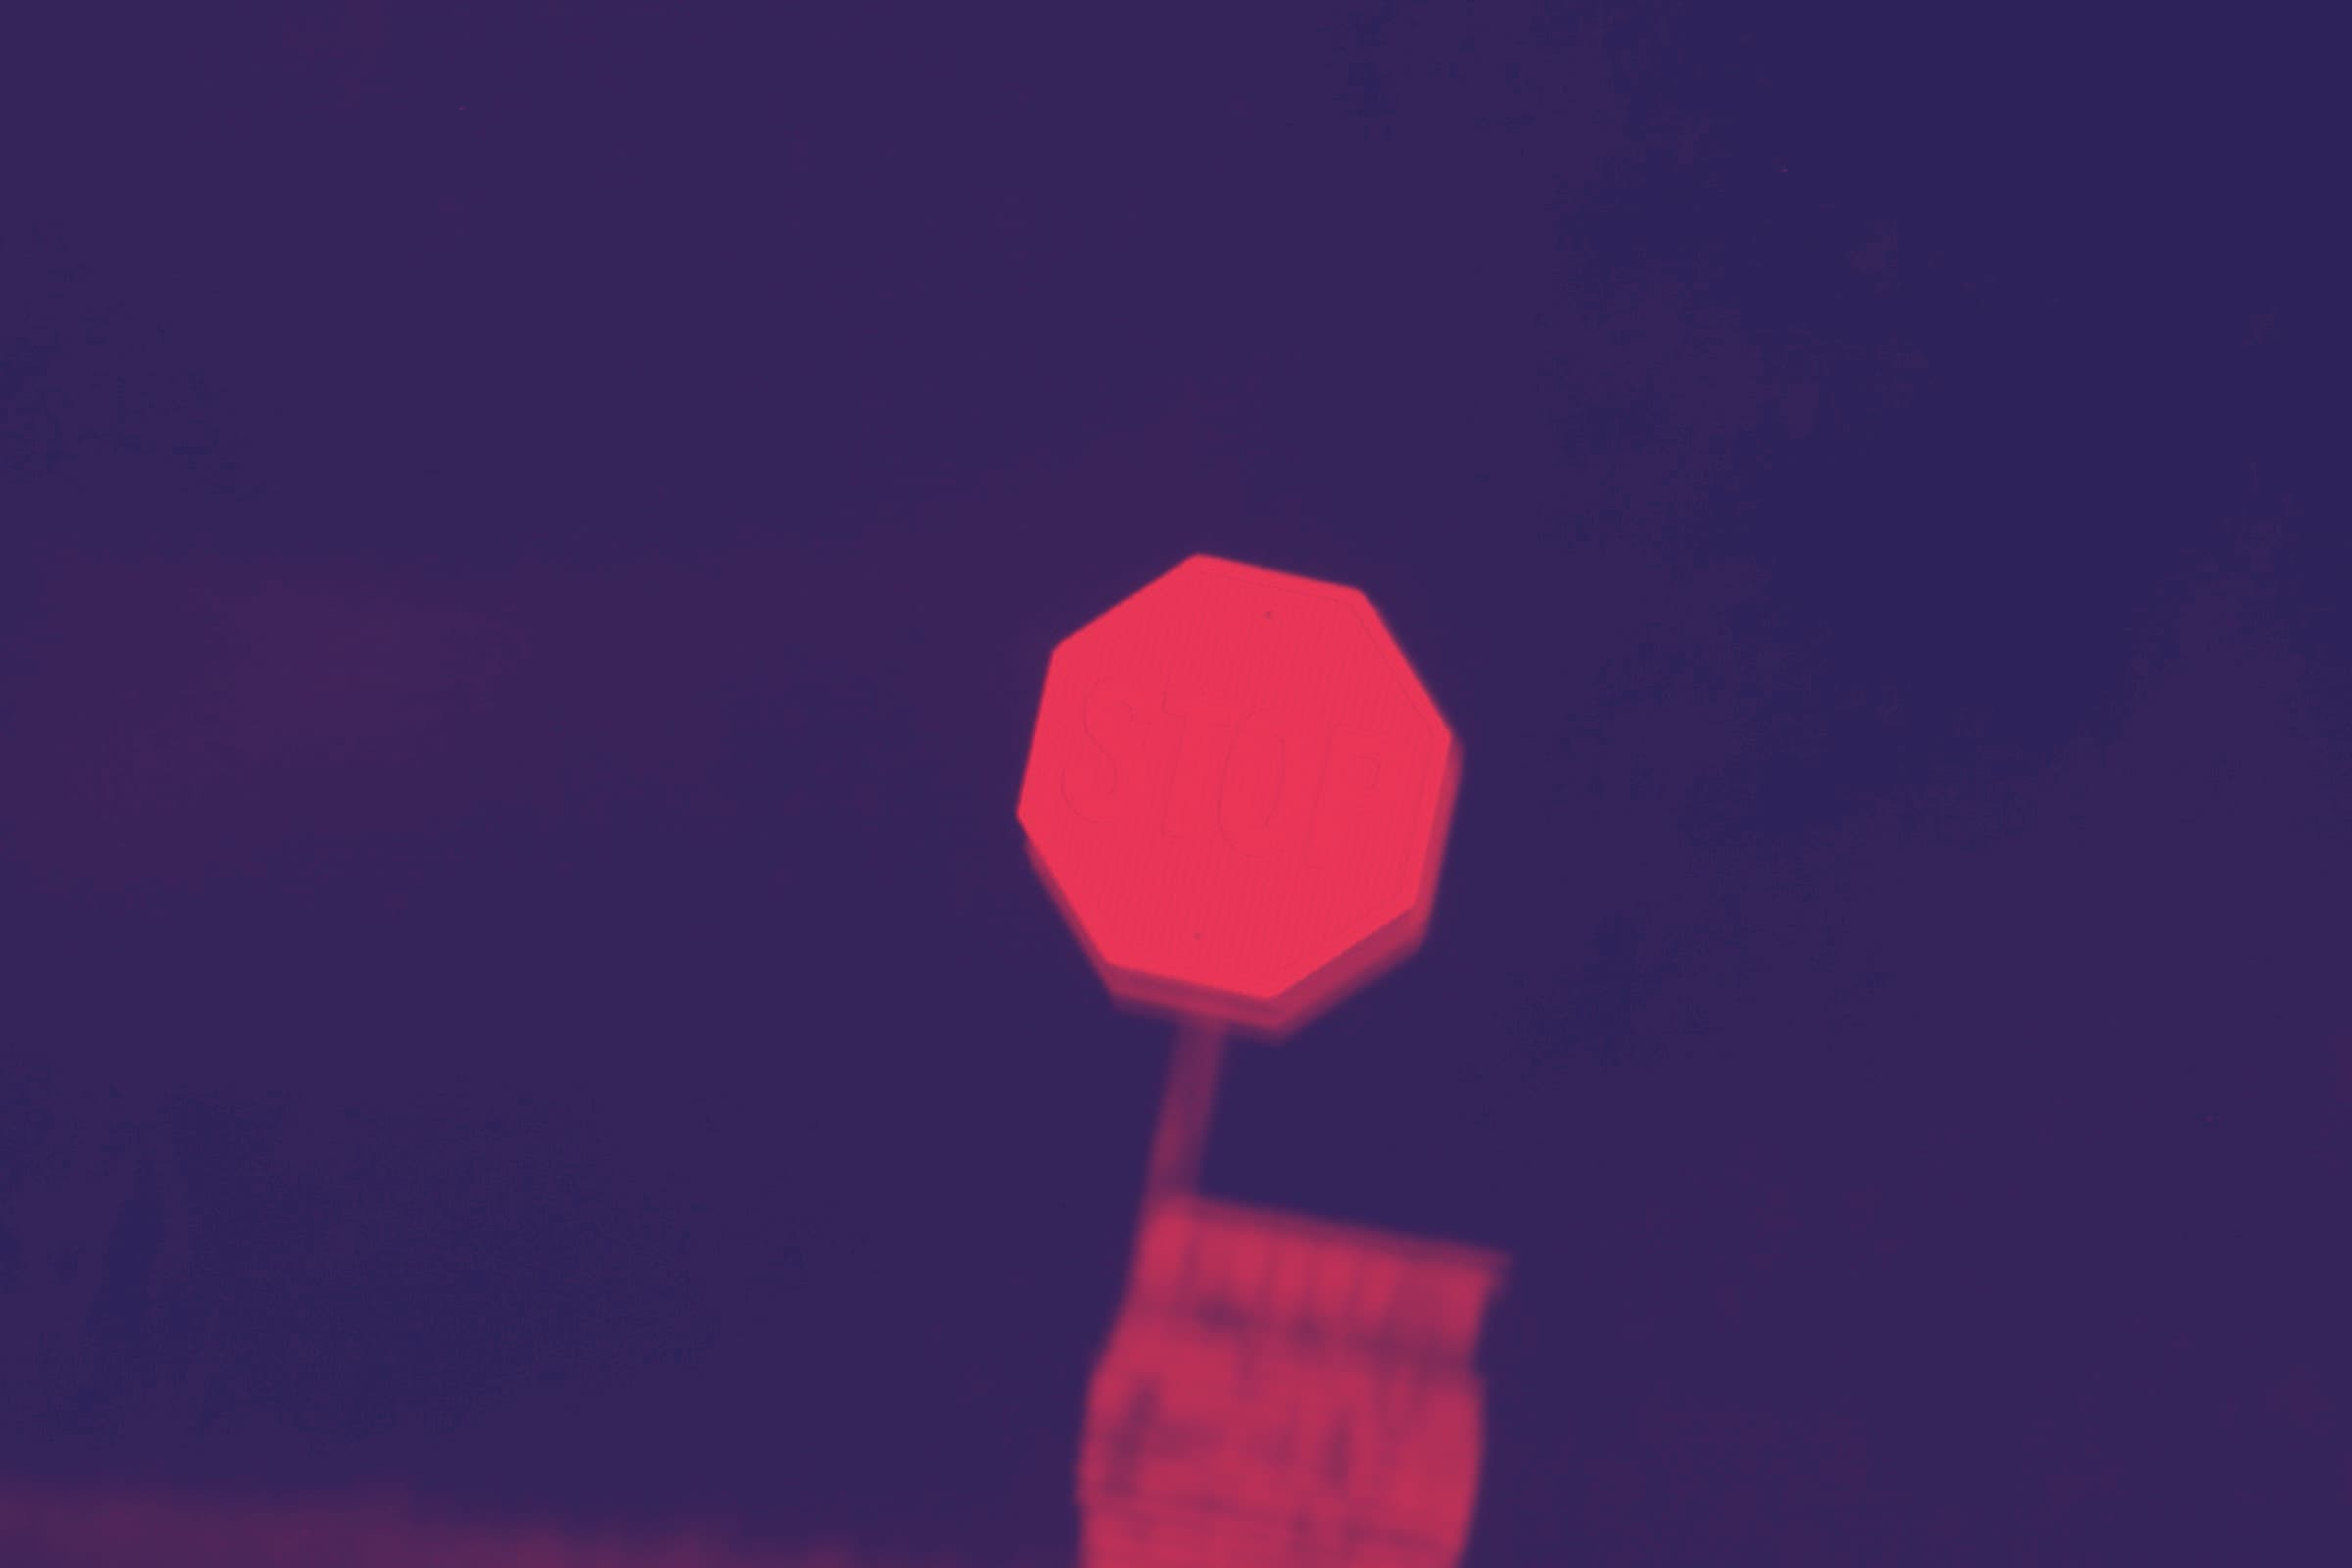 silhouette of a stop sign